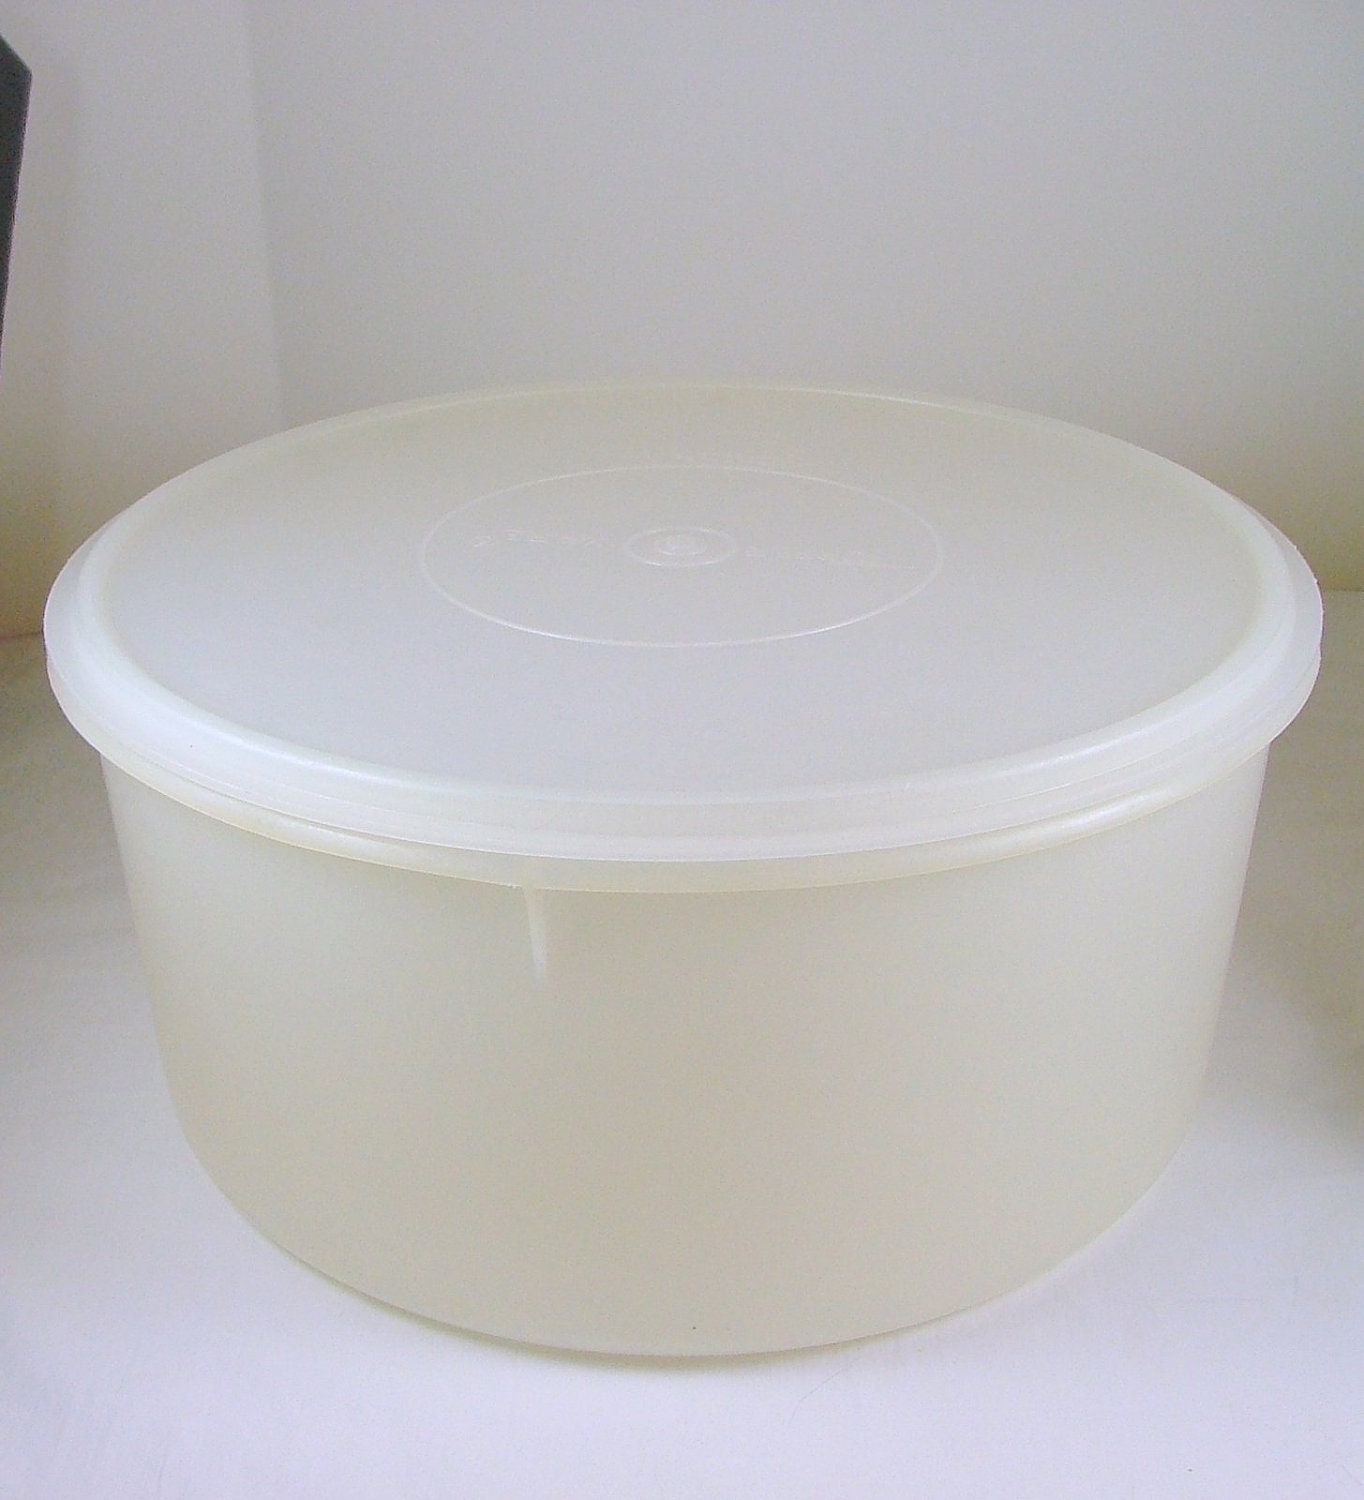 Vintage Tupperware Large Round Storage Container In Opaque